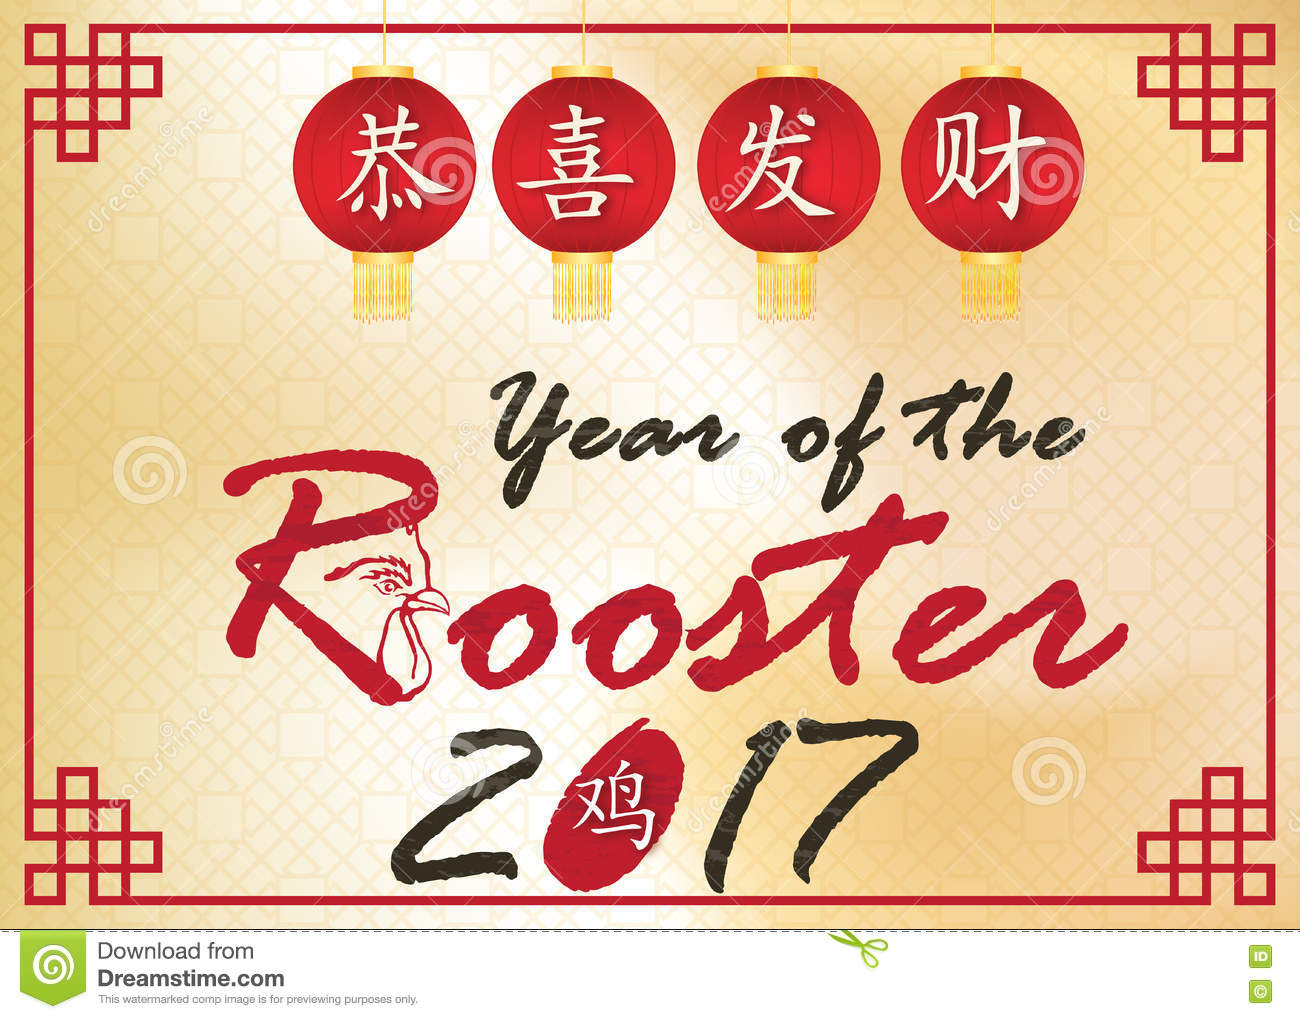 printable chinese new year of the rooster 2017 greeting card chinese characters meaning year of the rooster on the paper lanterns happy new year